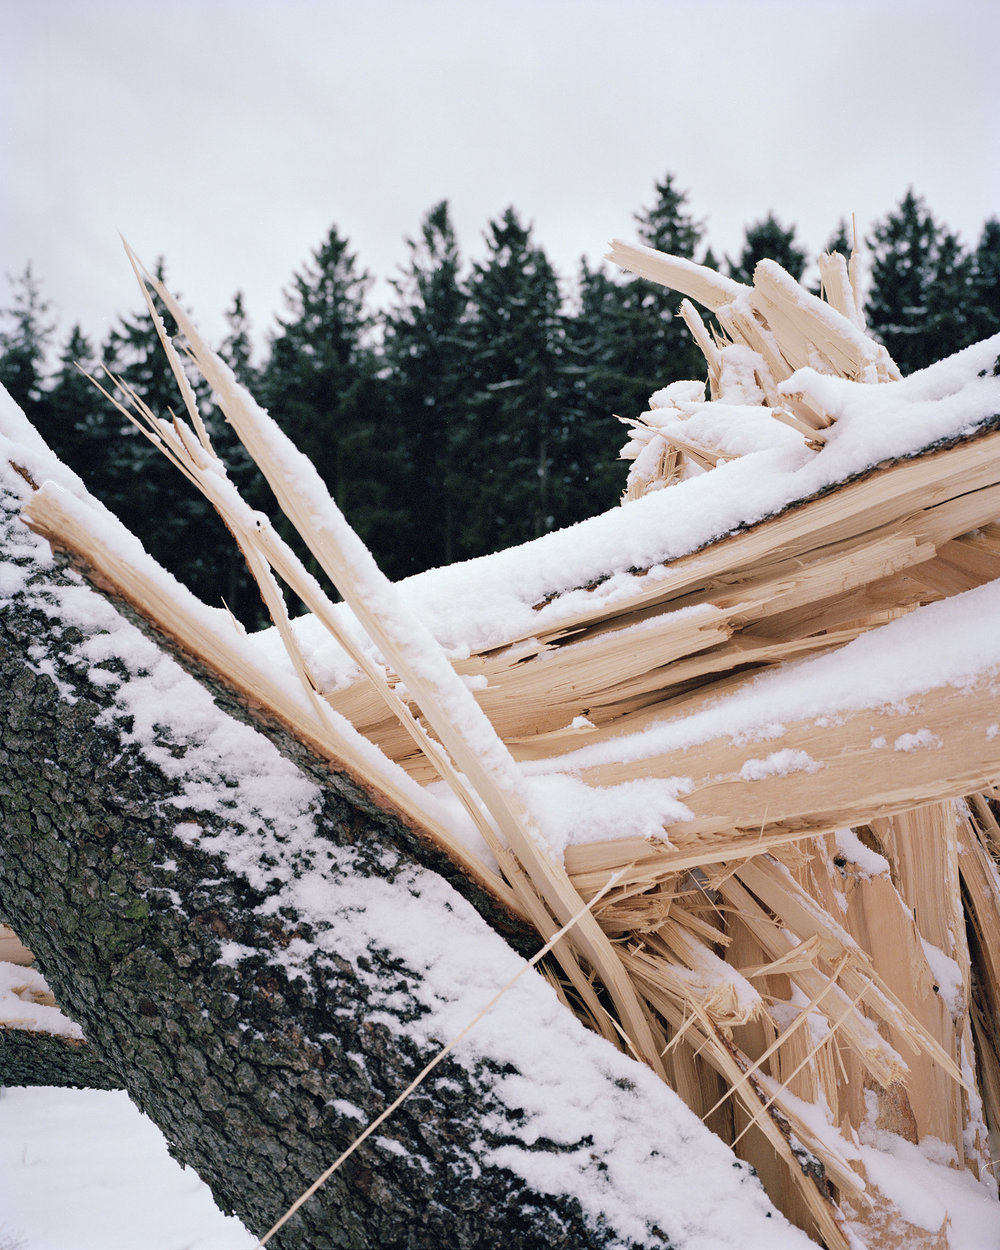 Winter_Harz_11_v1.jpg